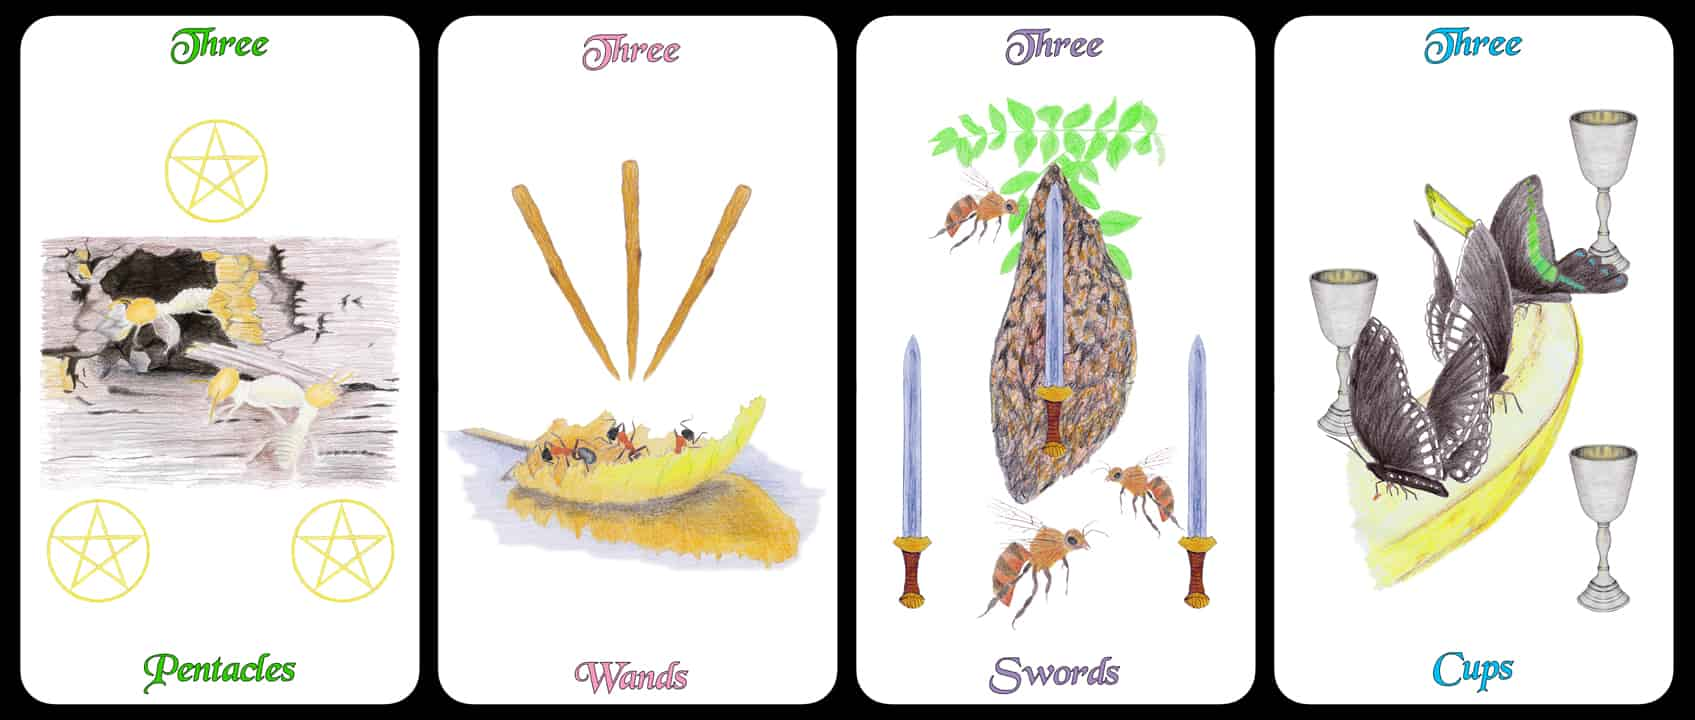 The Threes - The Arthropoda Tarot Deck by Linda Ursin